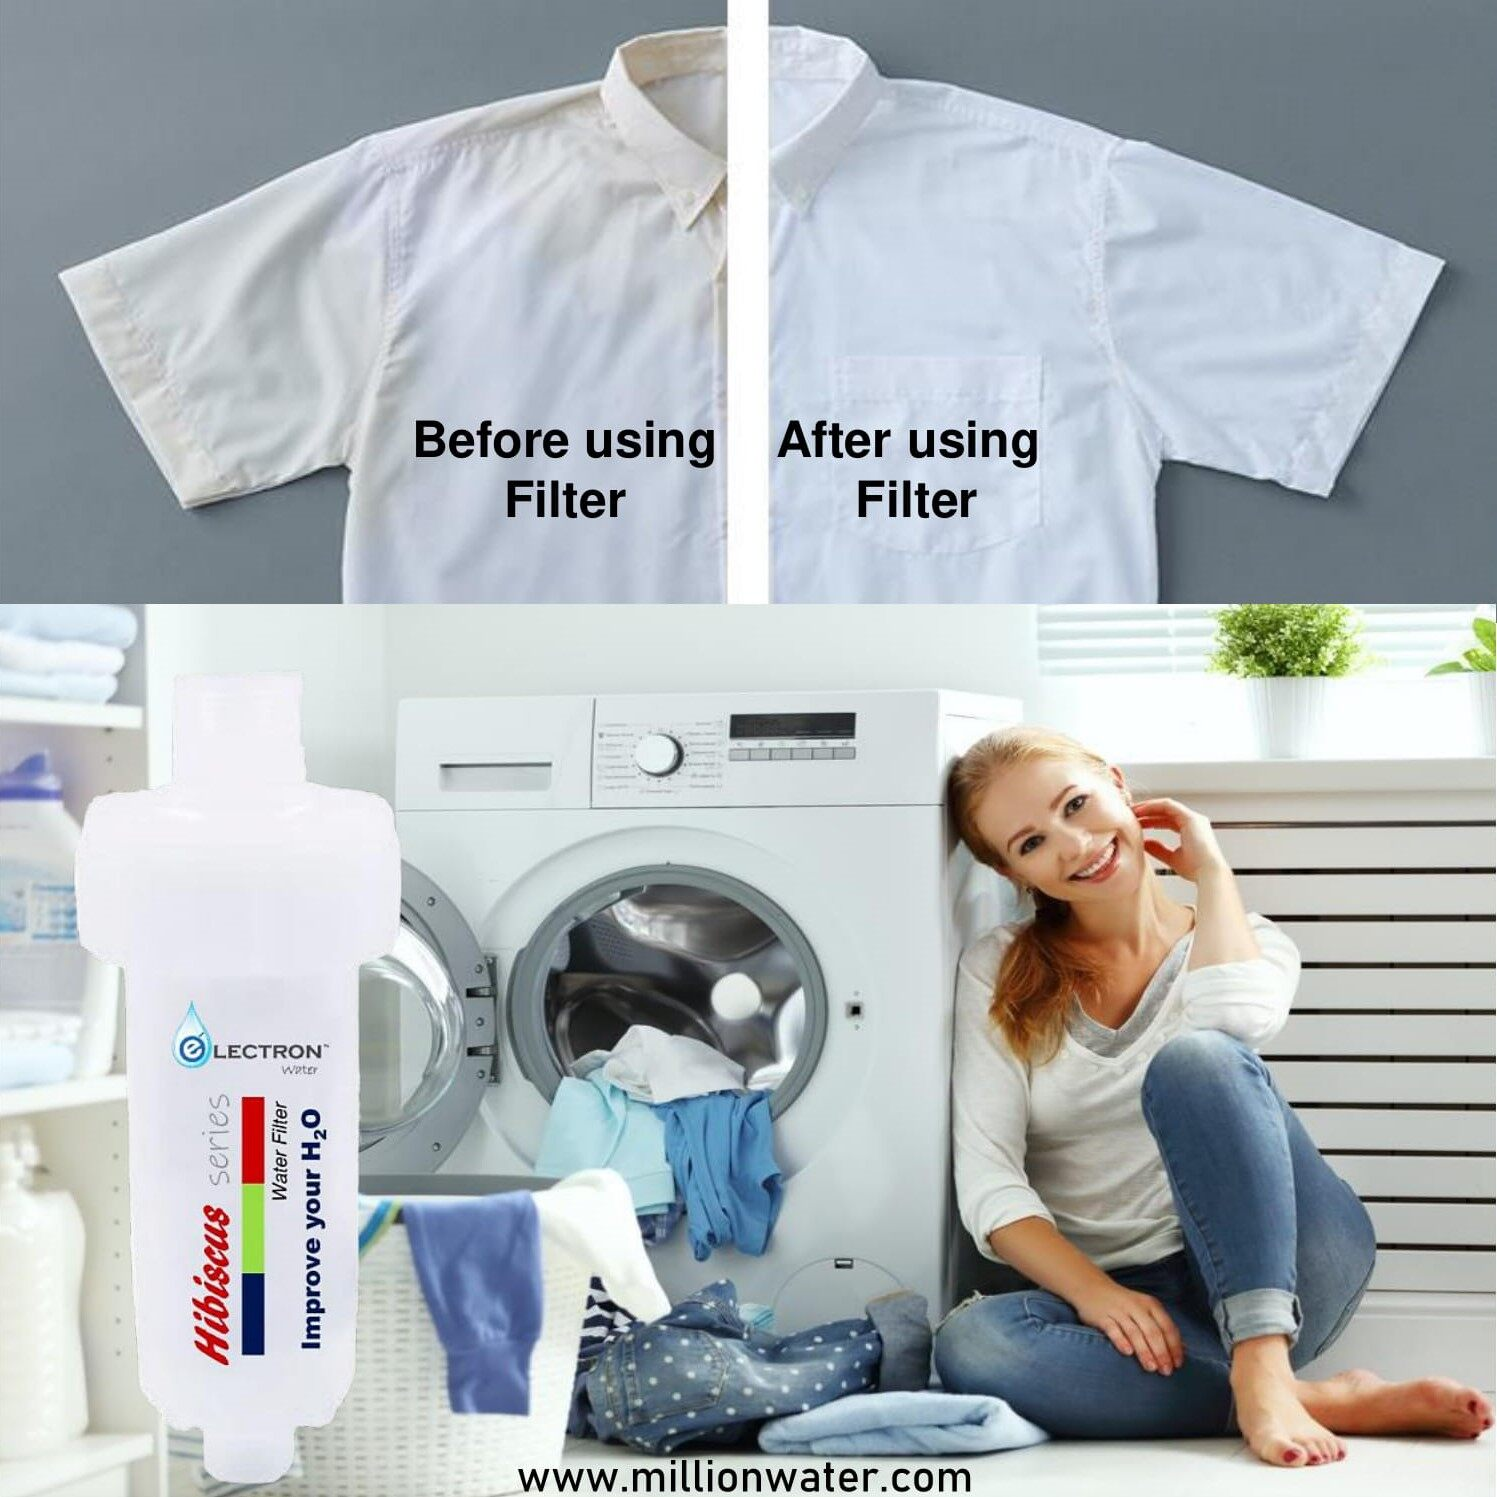 """ELECTRON WATER - 7"""" Washing Machine Filter / Shower Filter / Faucet Filter Remove Rust & Sediments in the water"""